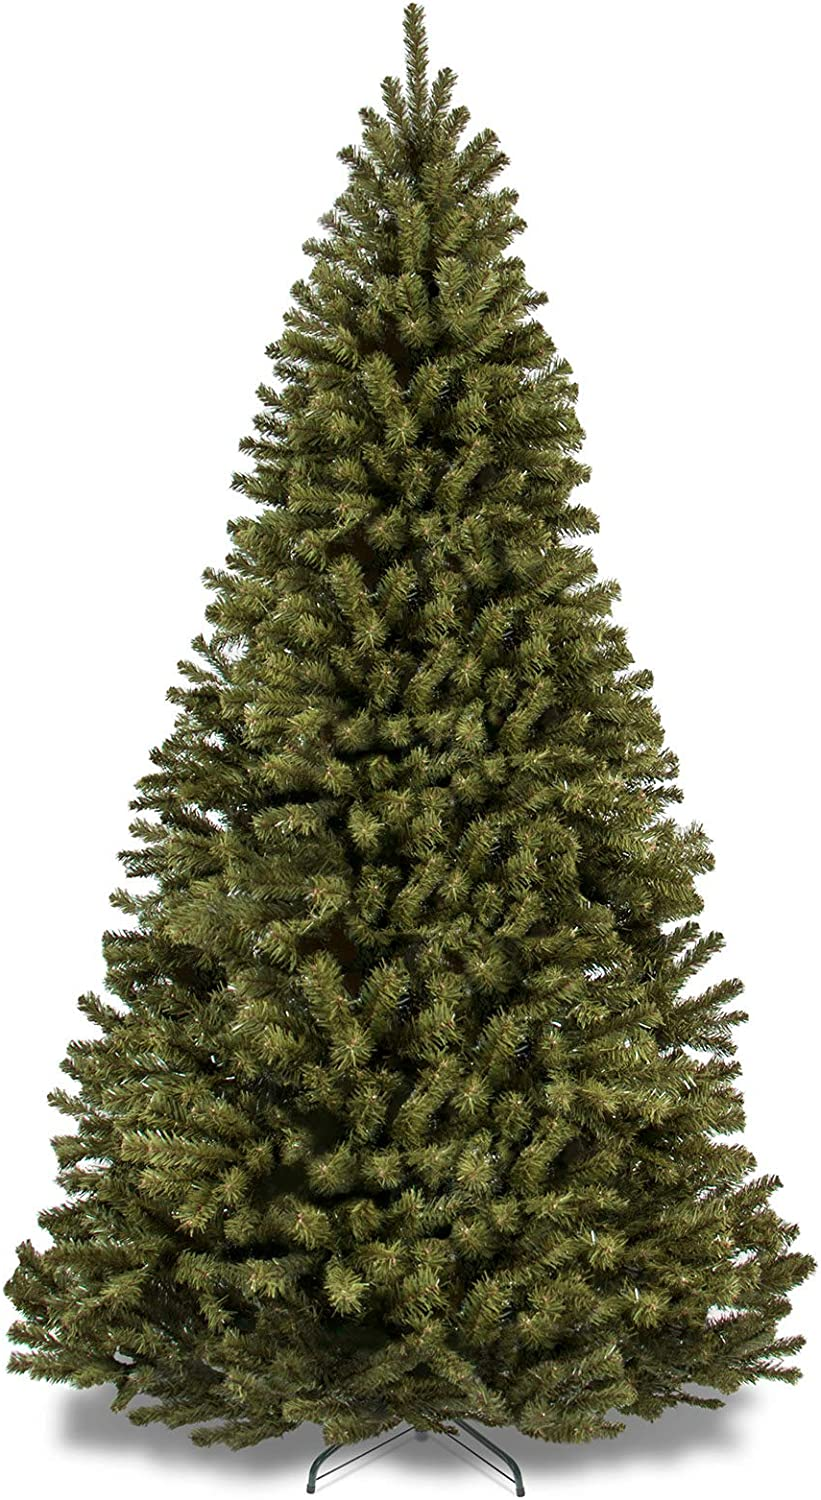 B01L9X99GC Best Choice Products 7.5ft Premium Spruce Hinged Artificial Christmas Tree w/Easy Assembly, Foldable Stand, Green 71AiOGLoz5L